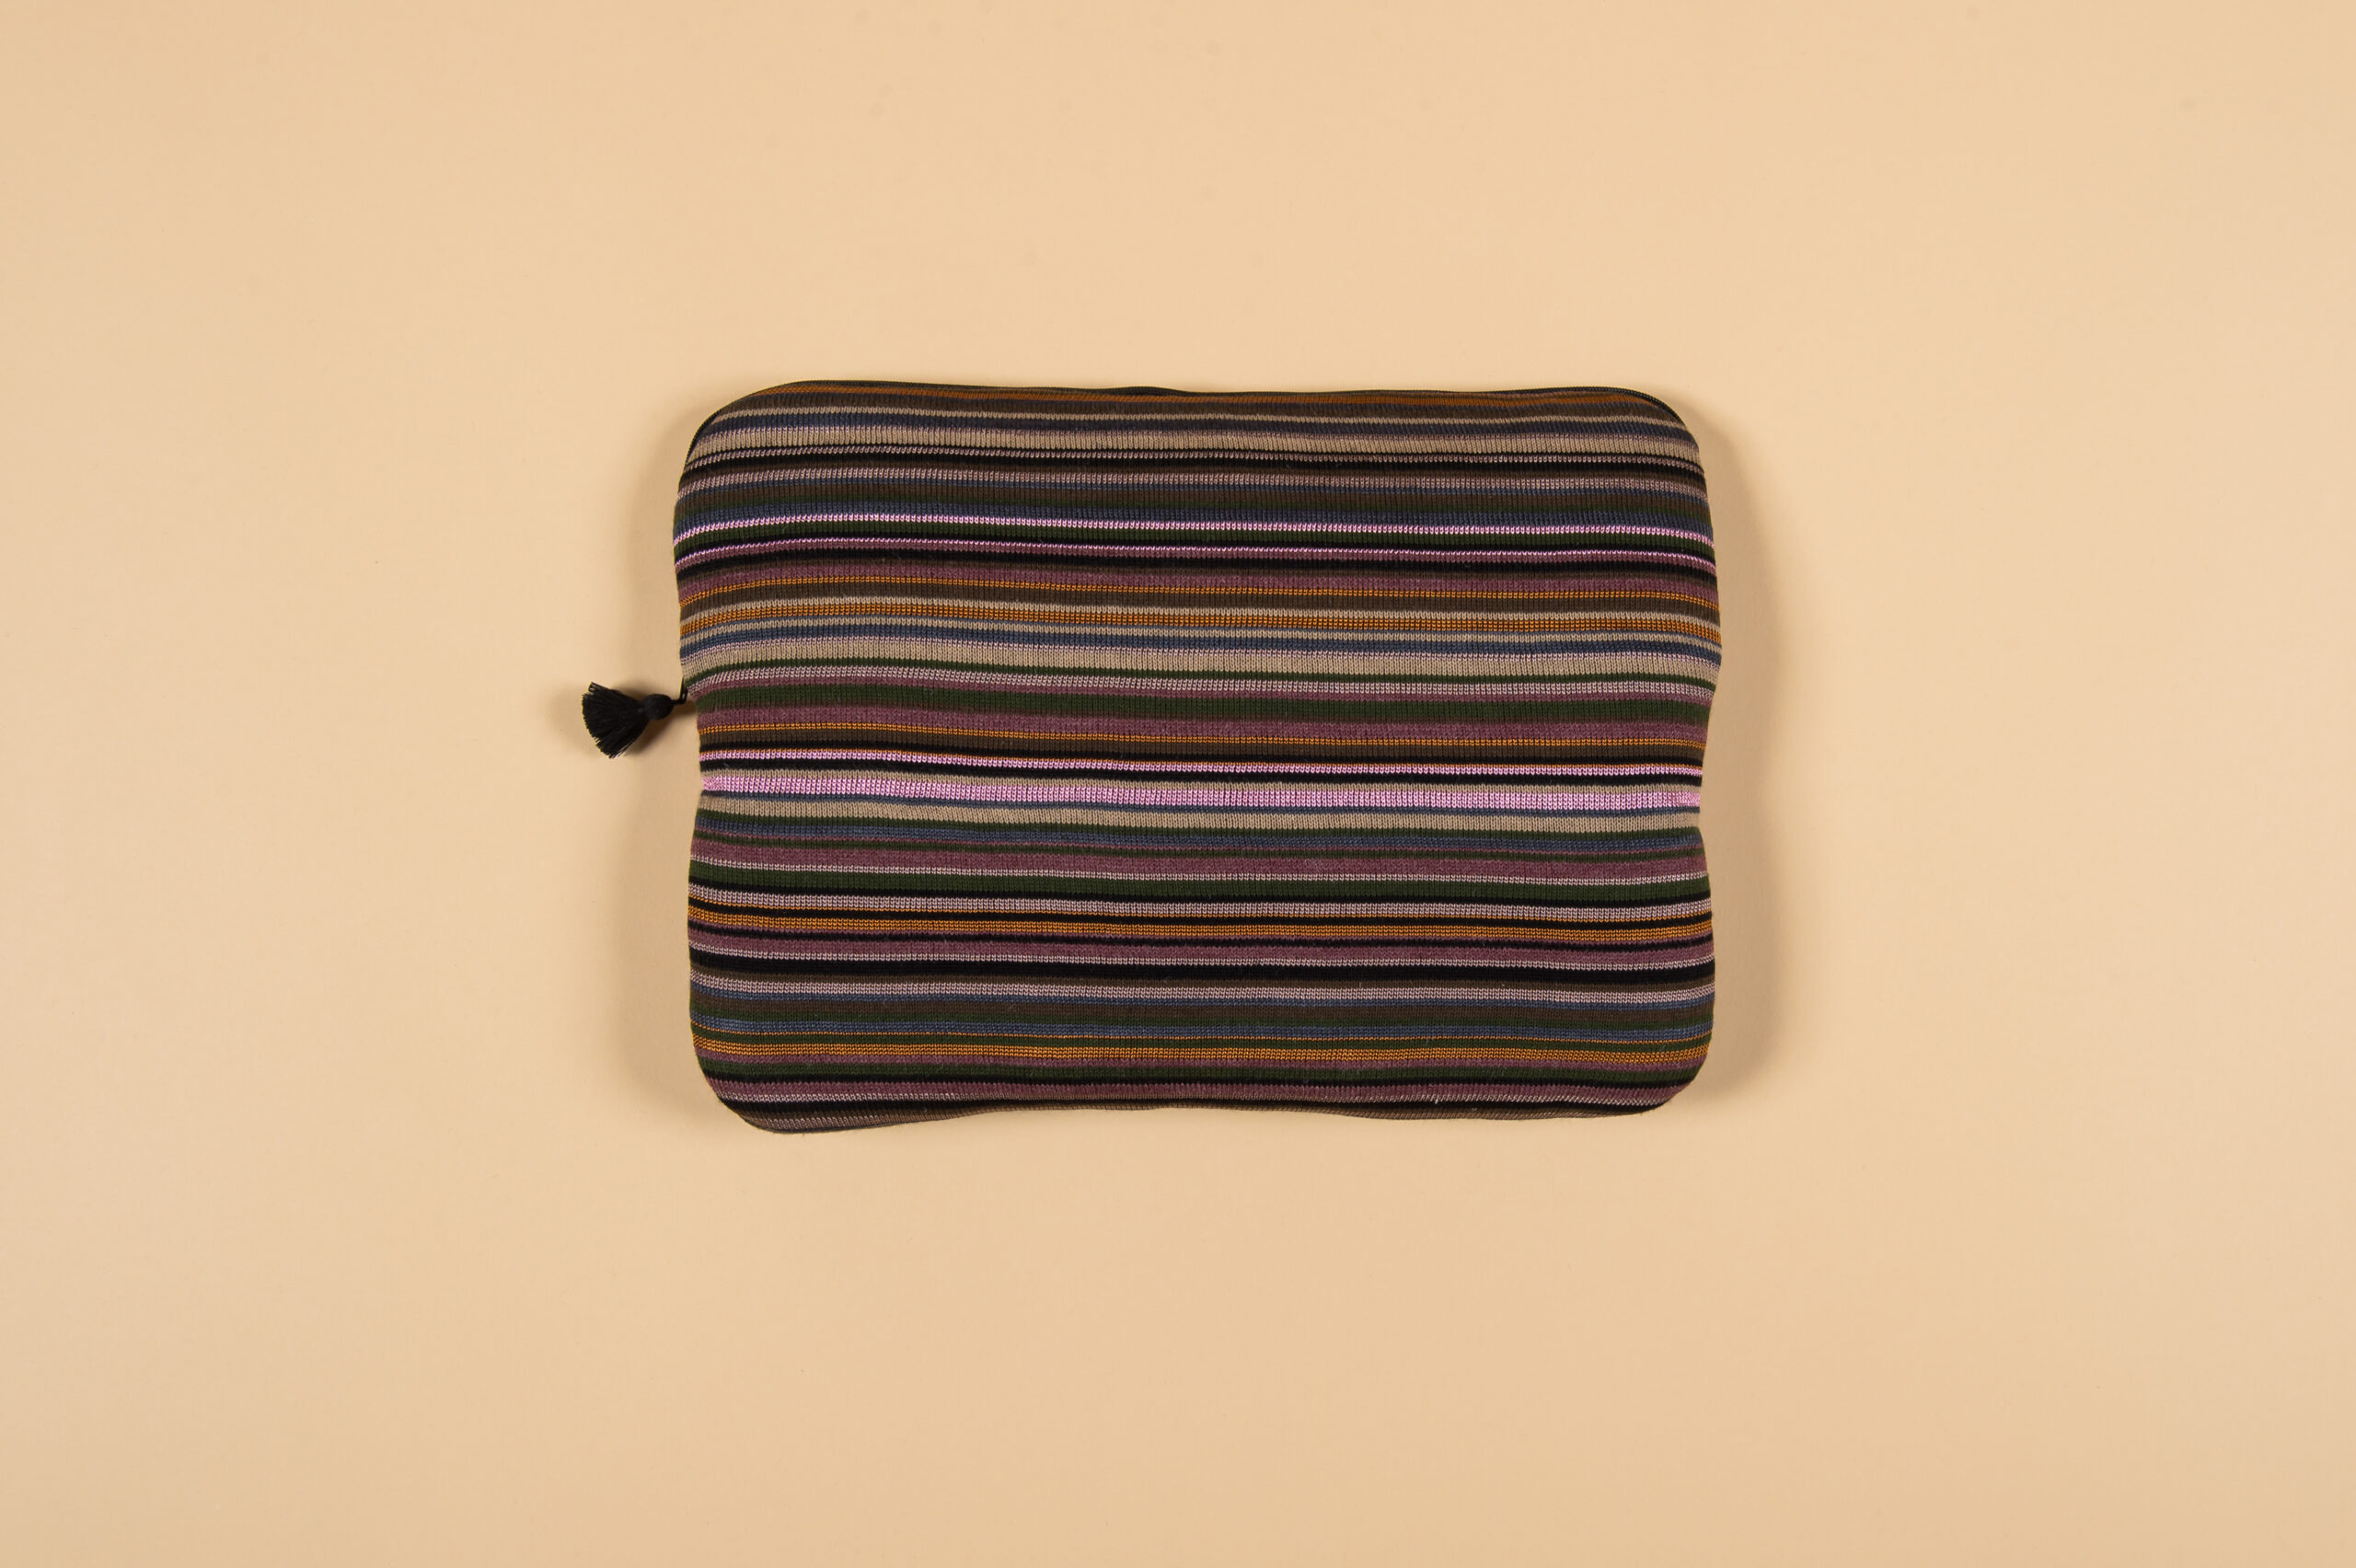 Computer Case with stripes